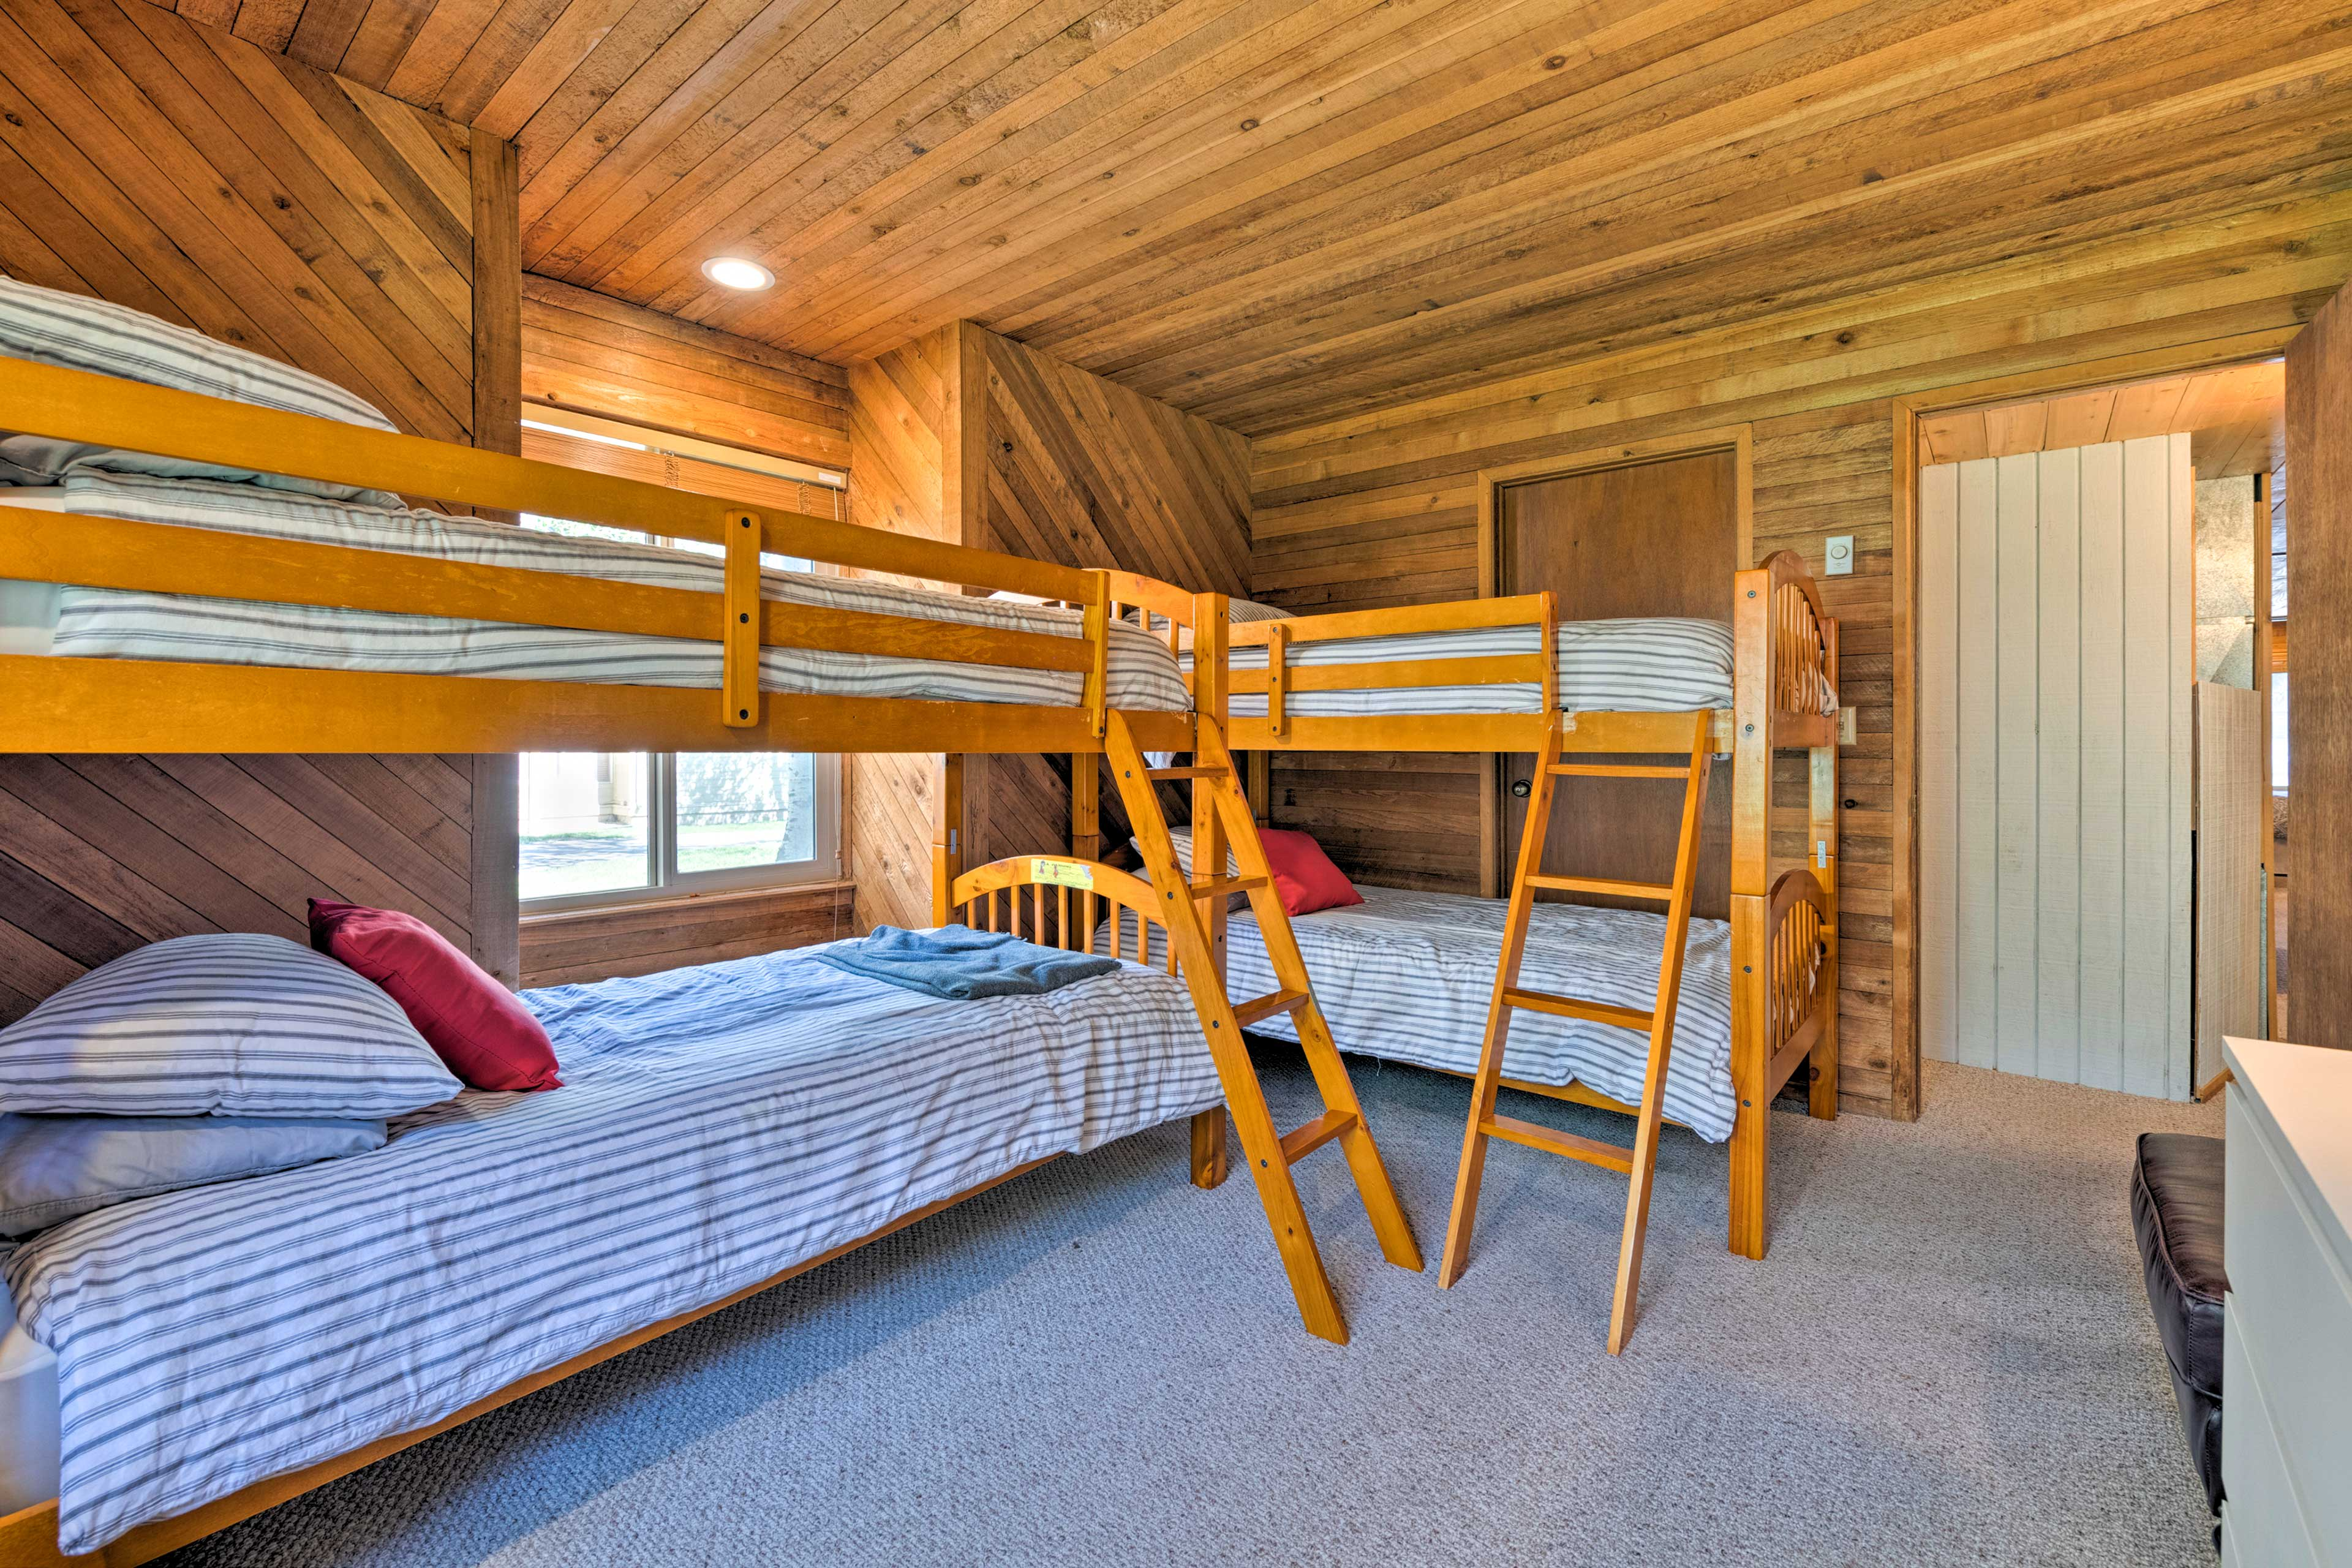 First one off the slopes gets dibs on the top bunk!